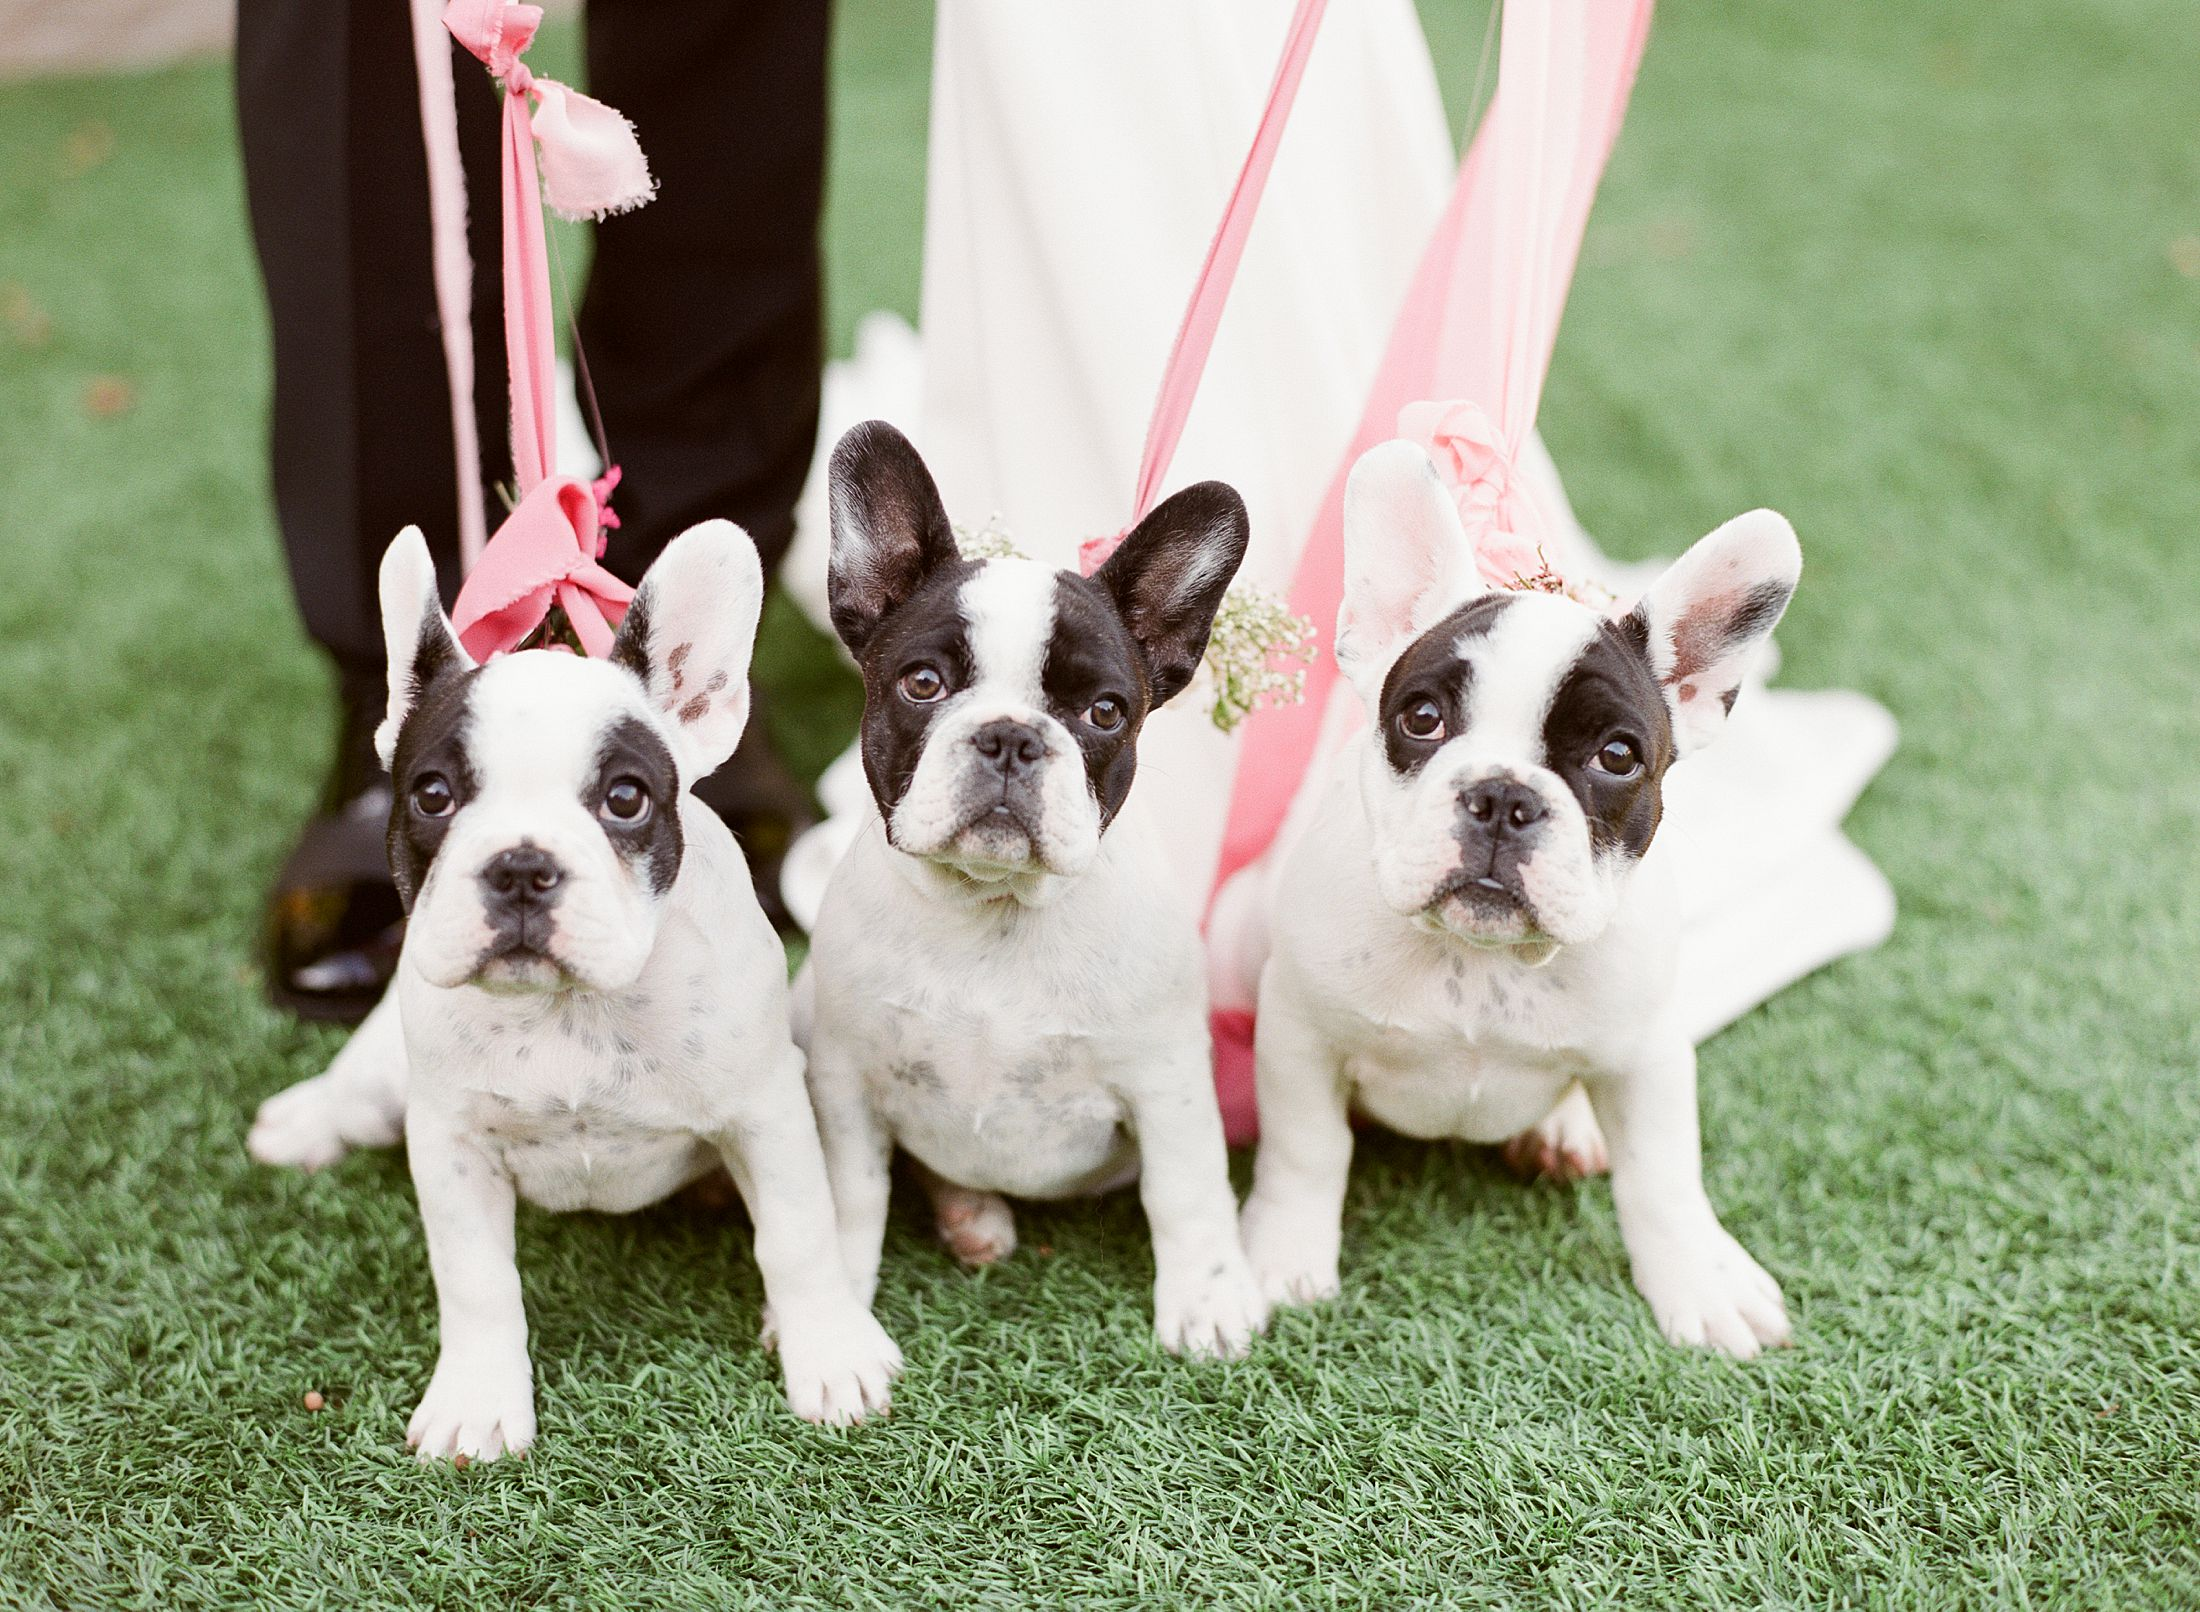 Pink Ombre Wedding Inspiration on Style Me Pretty - Royal Palms Wedding - Scottsdale Wedding - Ashley Baumgartner - Bloom and Blueprint - Wedding Puppies - Bulldog Puppies_0025.jpg